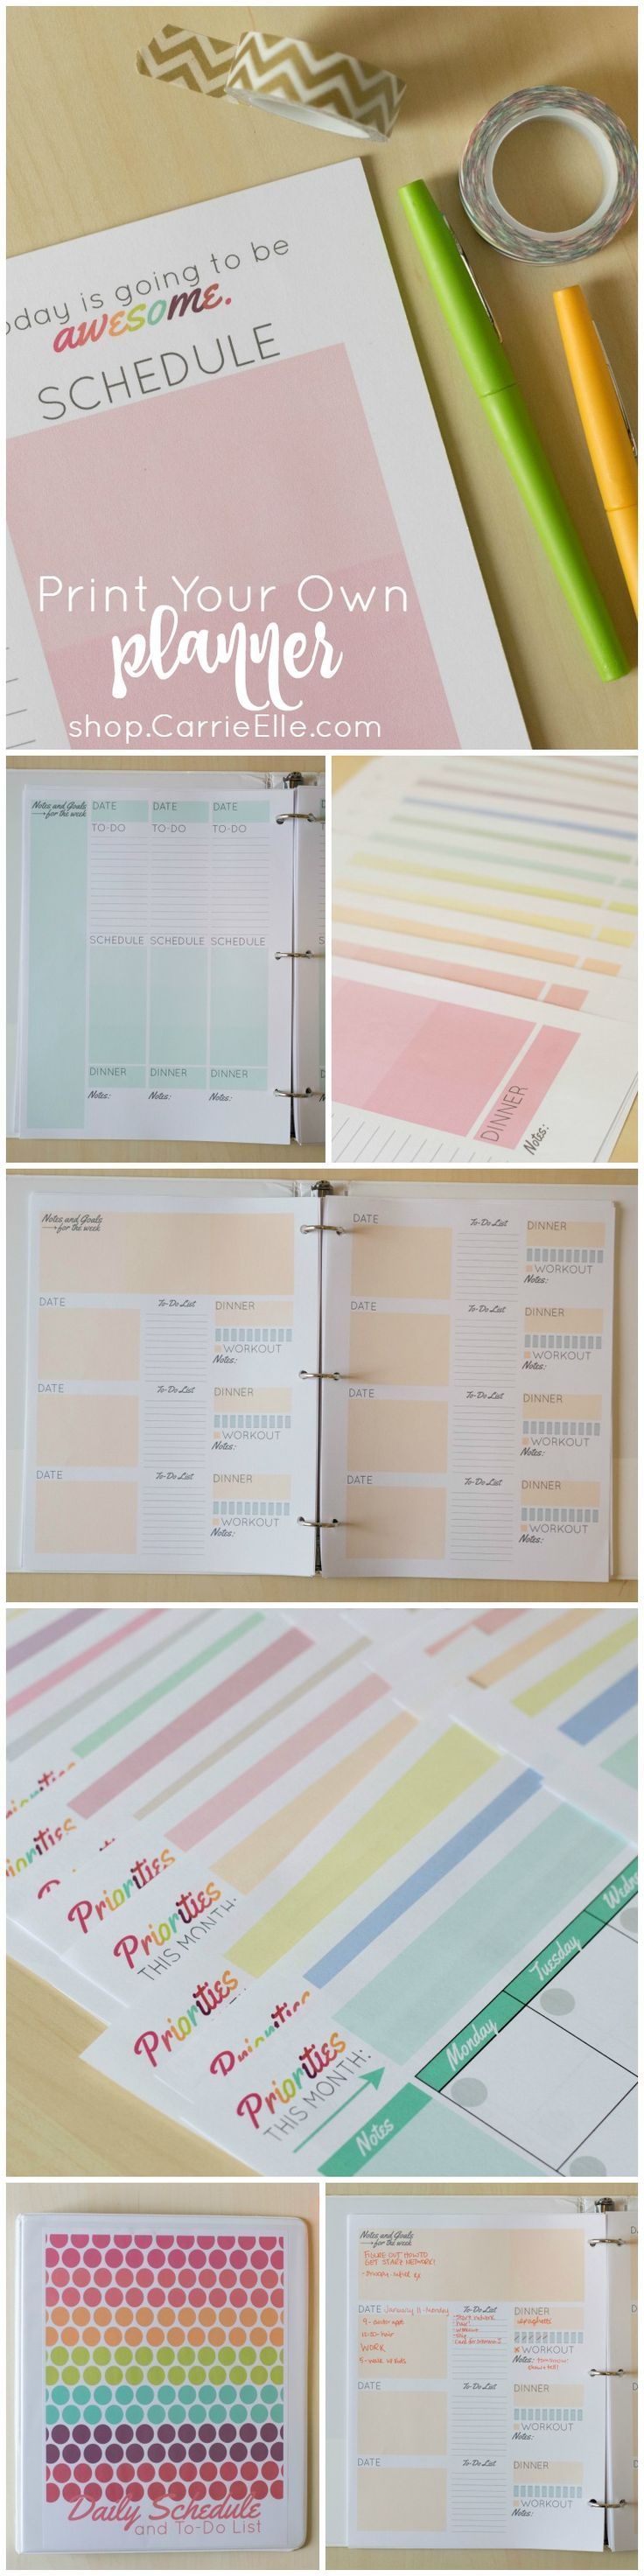 Print your own planner! These printable daily planner pages and to-do lists come in several different formats, tons of colors, and even include monthly calendars - everything you need to DIY your very own planner on the cheap!